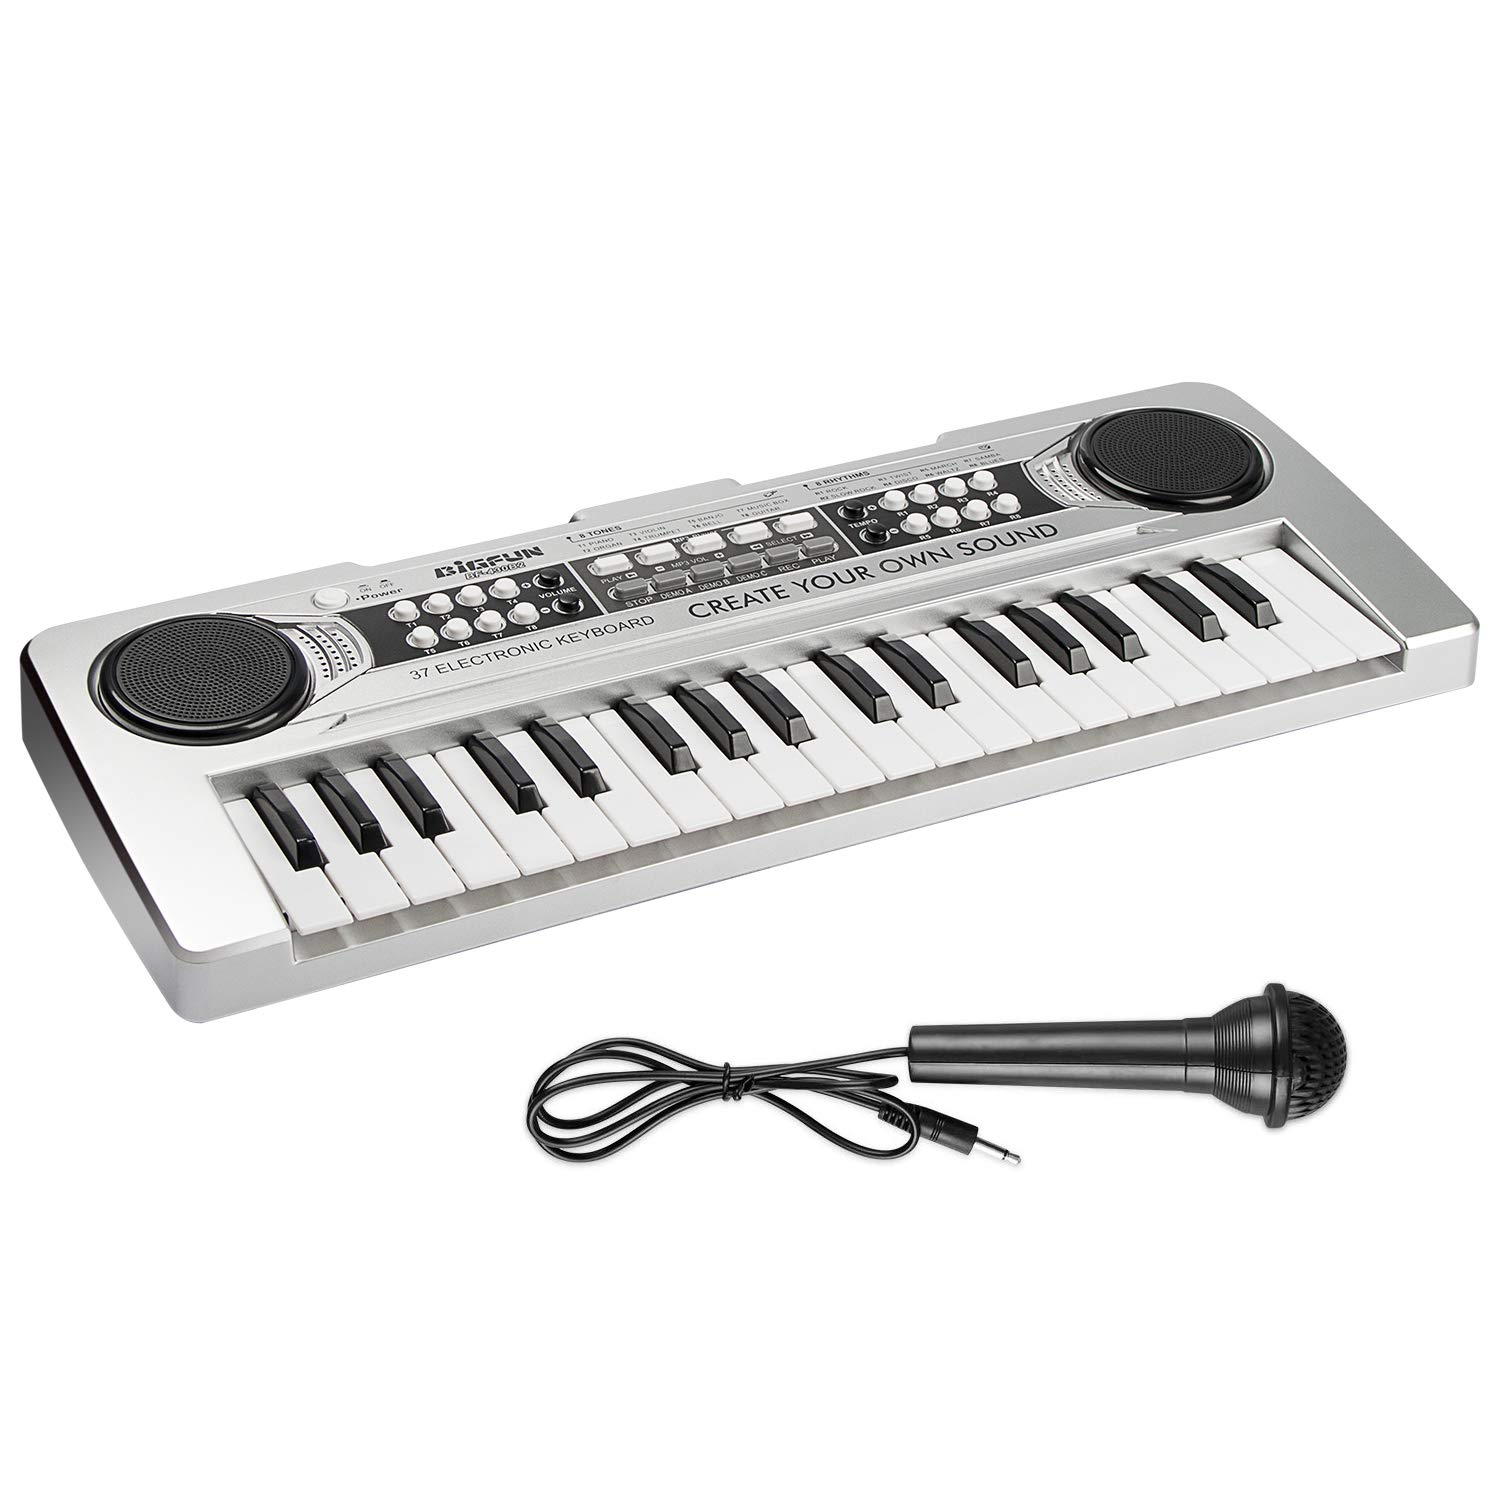 Aiyou Kids Piano Keyboard 37 Keys Portable Electronic Musical Instrument Multi-Function Keyboard Teaching Toys Birthday Christmas Day Gifts for Kids (Silver)